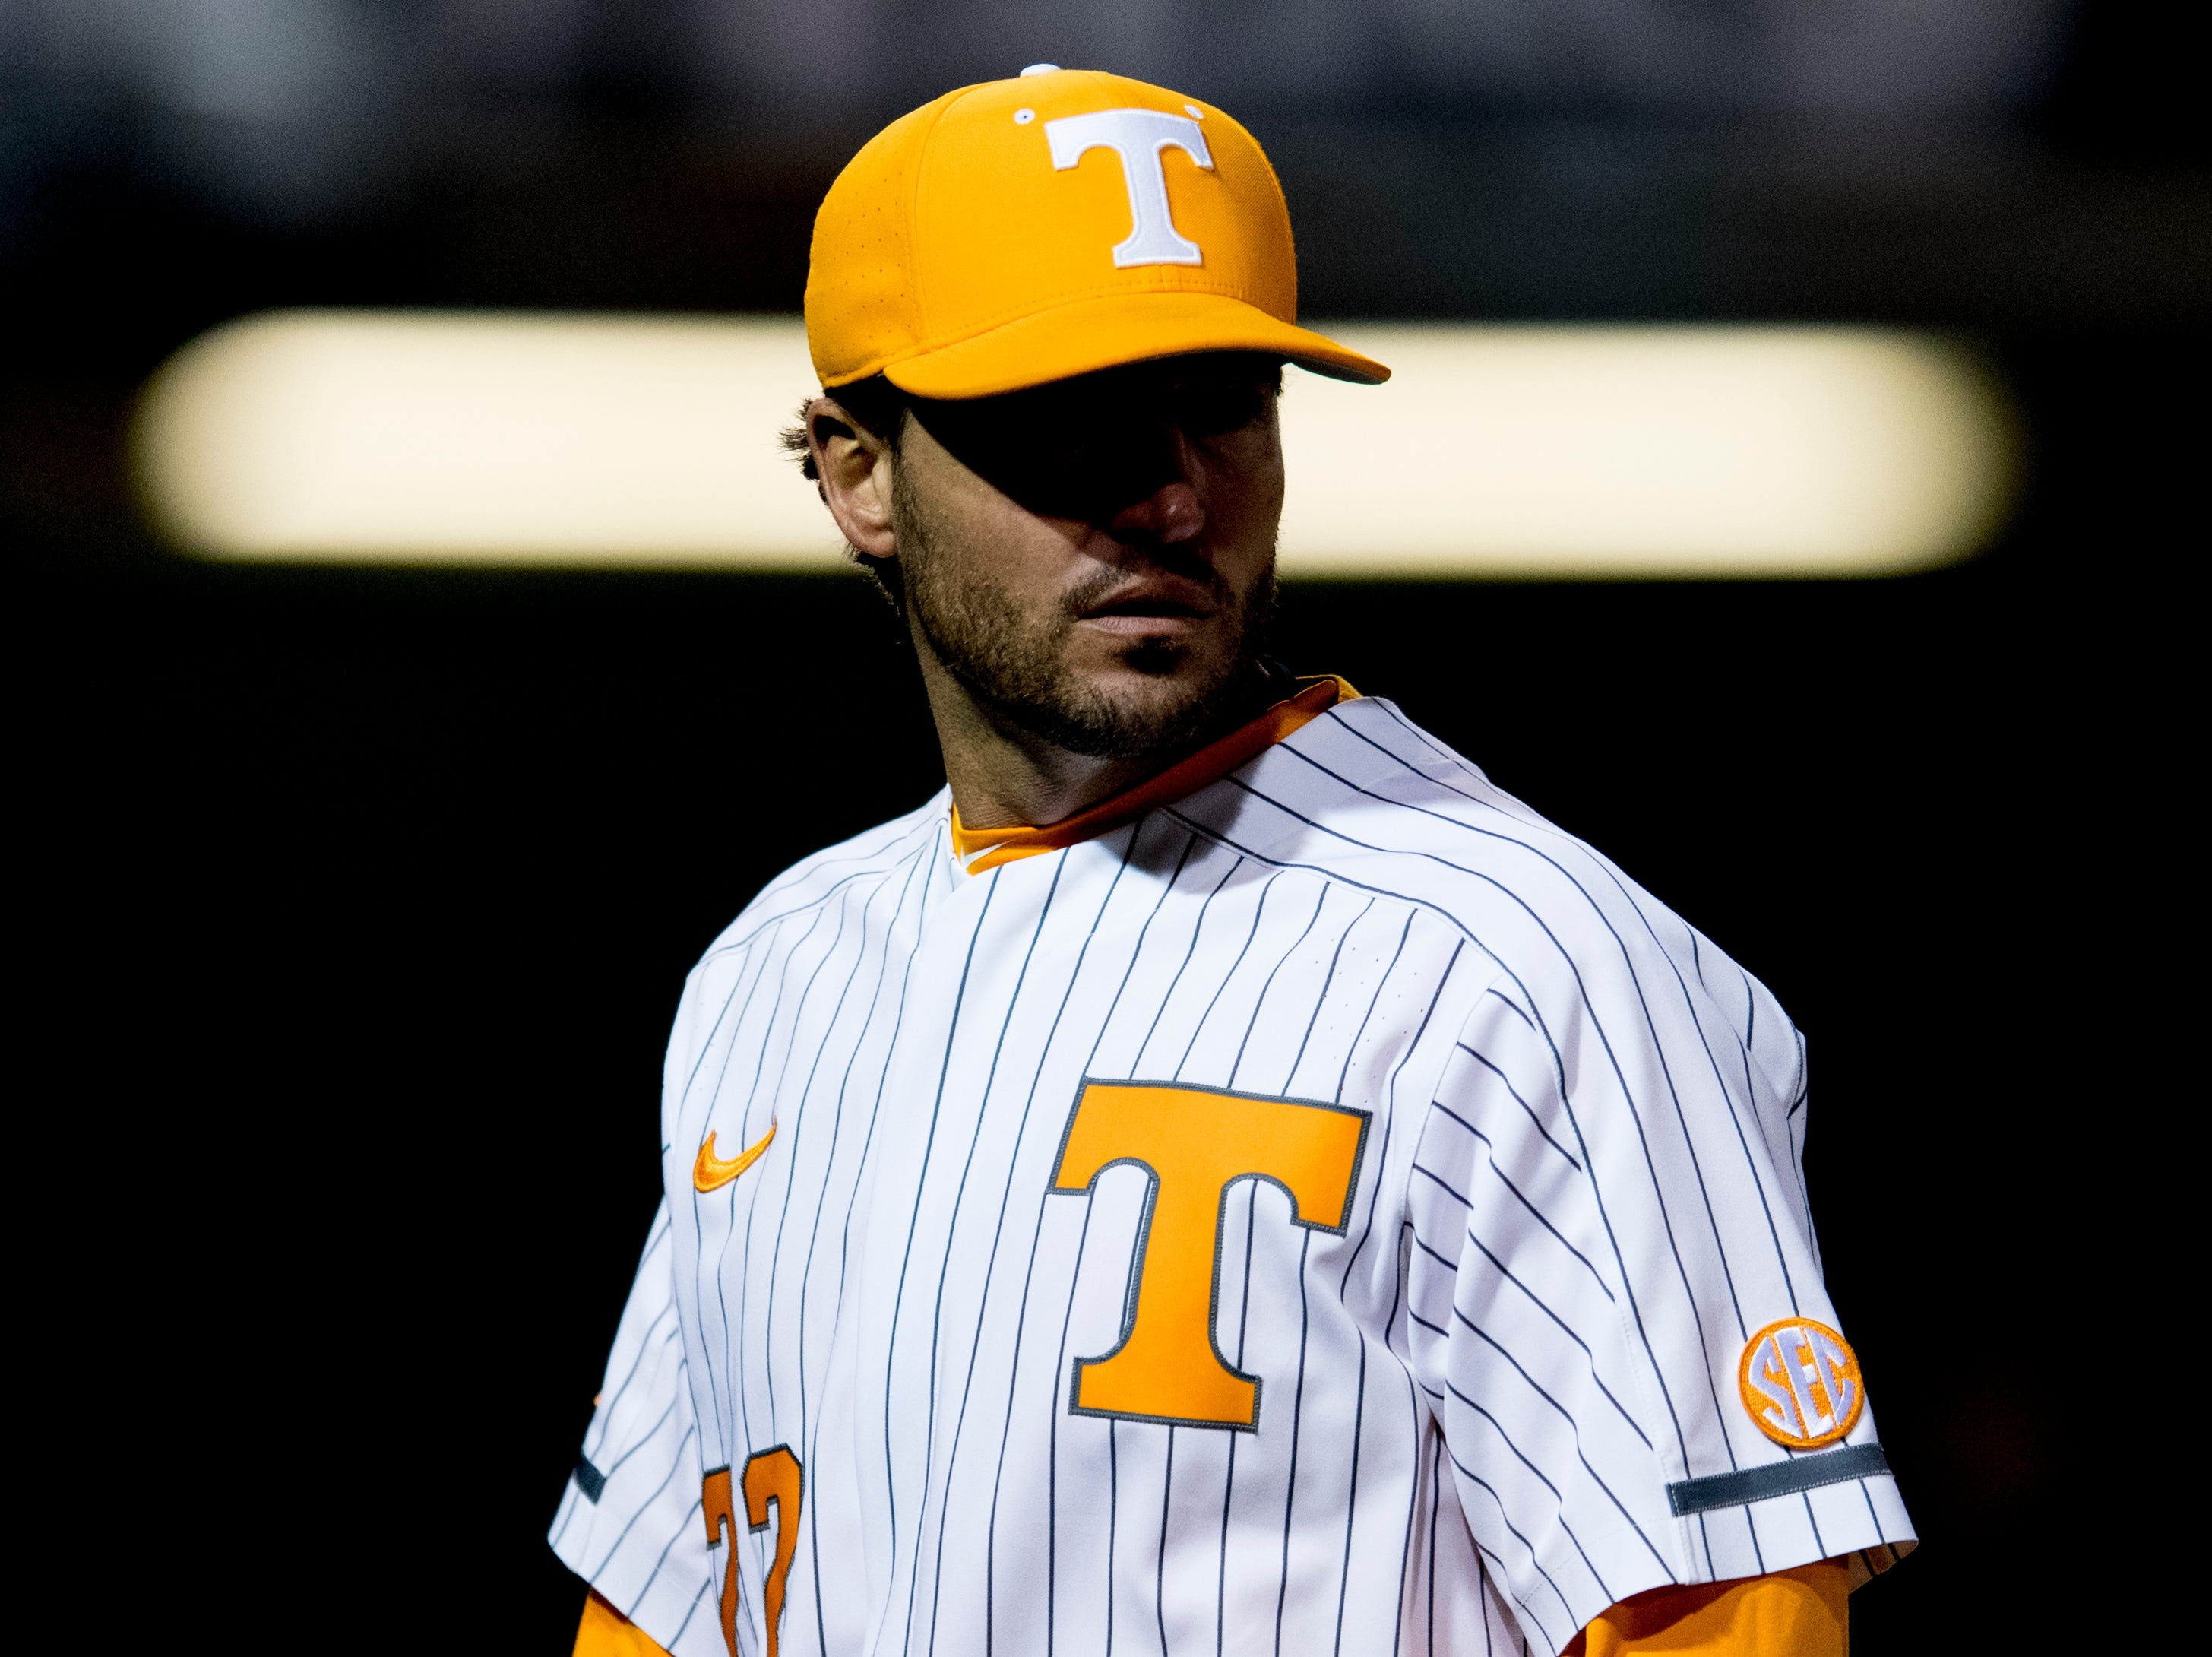 Tennessee Head Coach Tony Vitello walks on the field during a game between Tennessee and Alabama at Lindsey-Nelson Stadium in Knoxville, Tennessee on Friday, March 23, 2018.